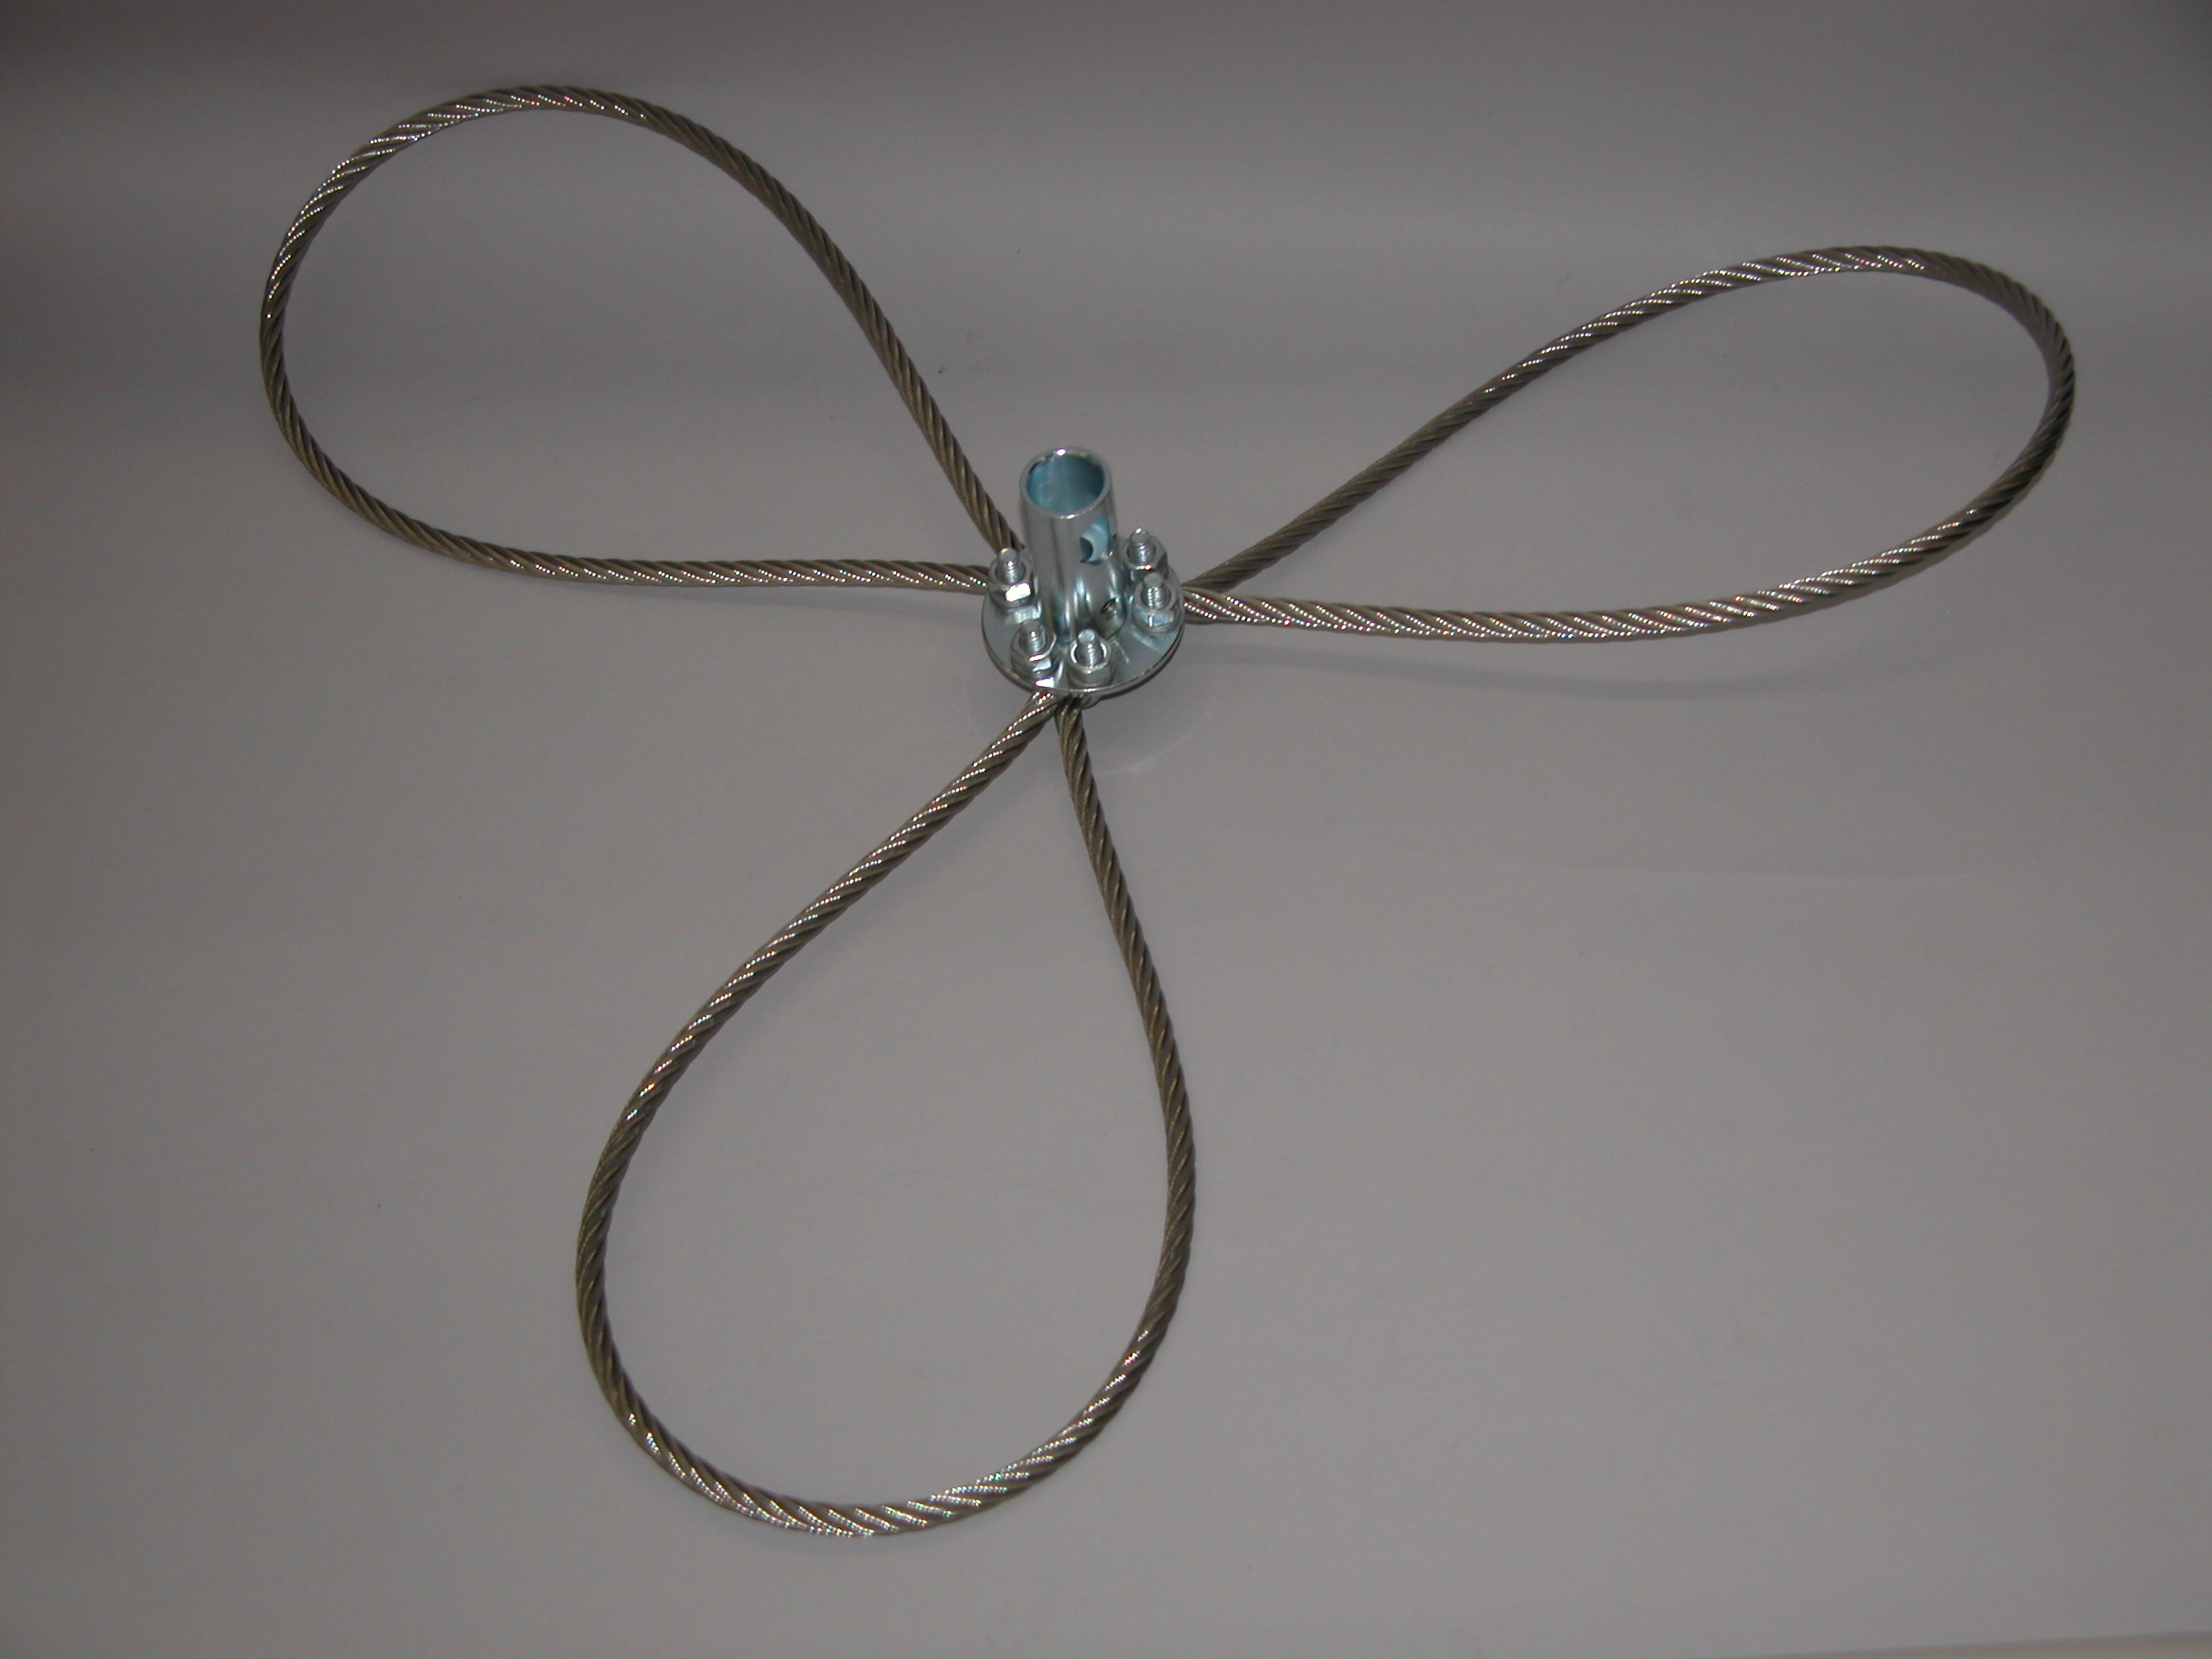 "7257 X-Large Cable Loop Whip, 30"" diameter"